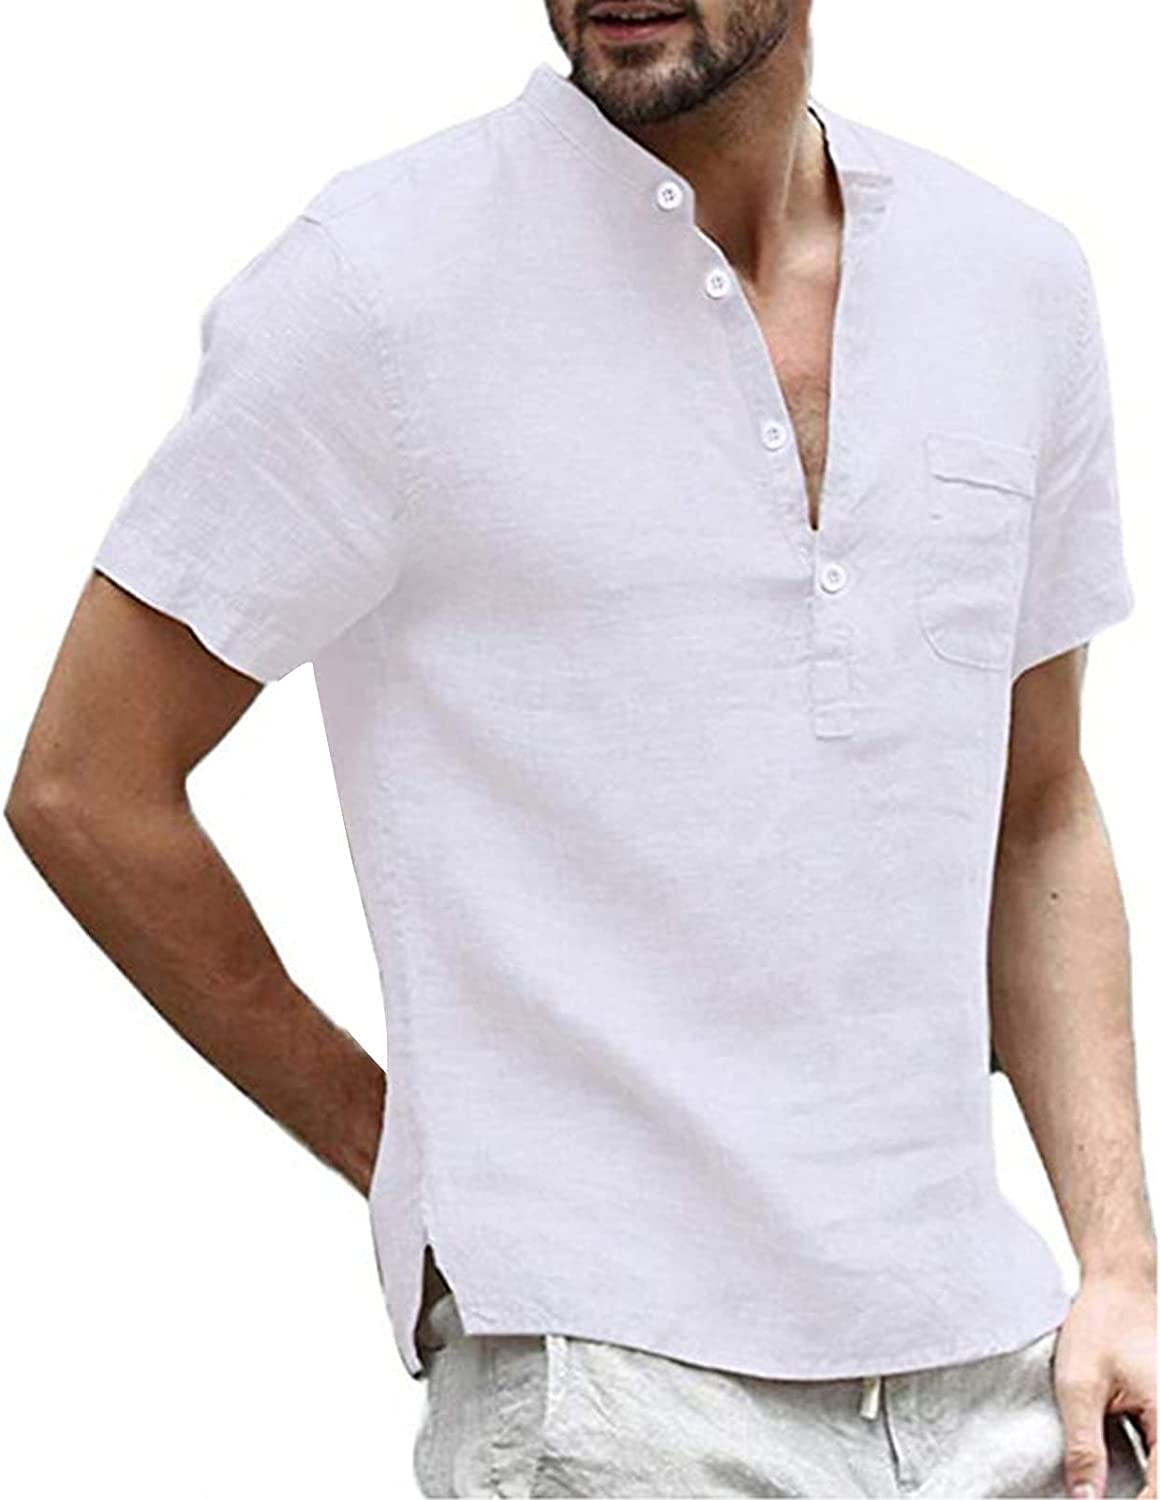 Mens Casual Cotton Linen T-Shirts Solid Color Short Sleeve Buttons Pocket Tops